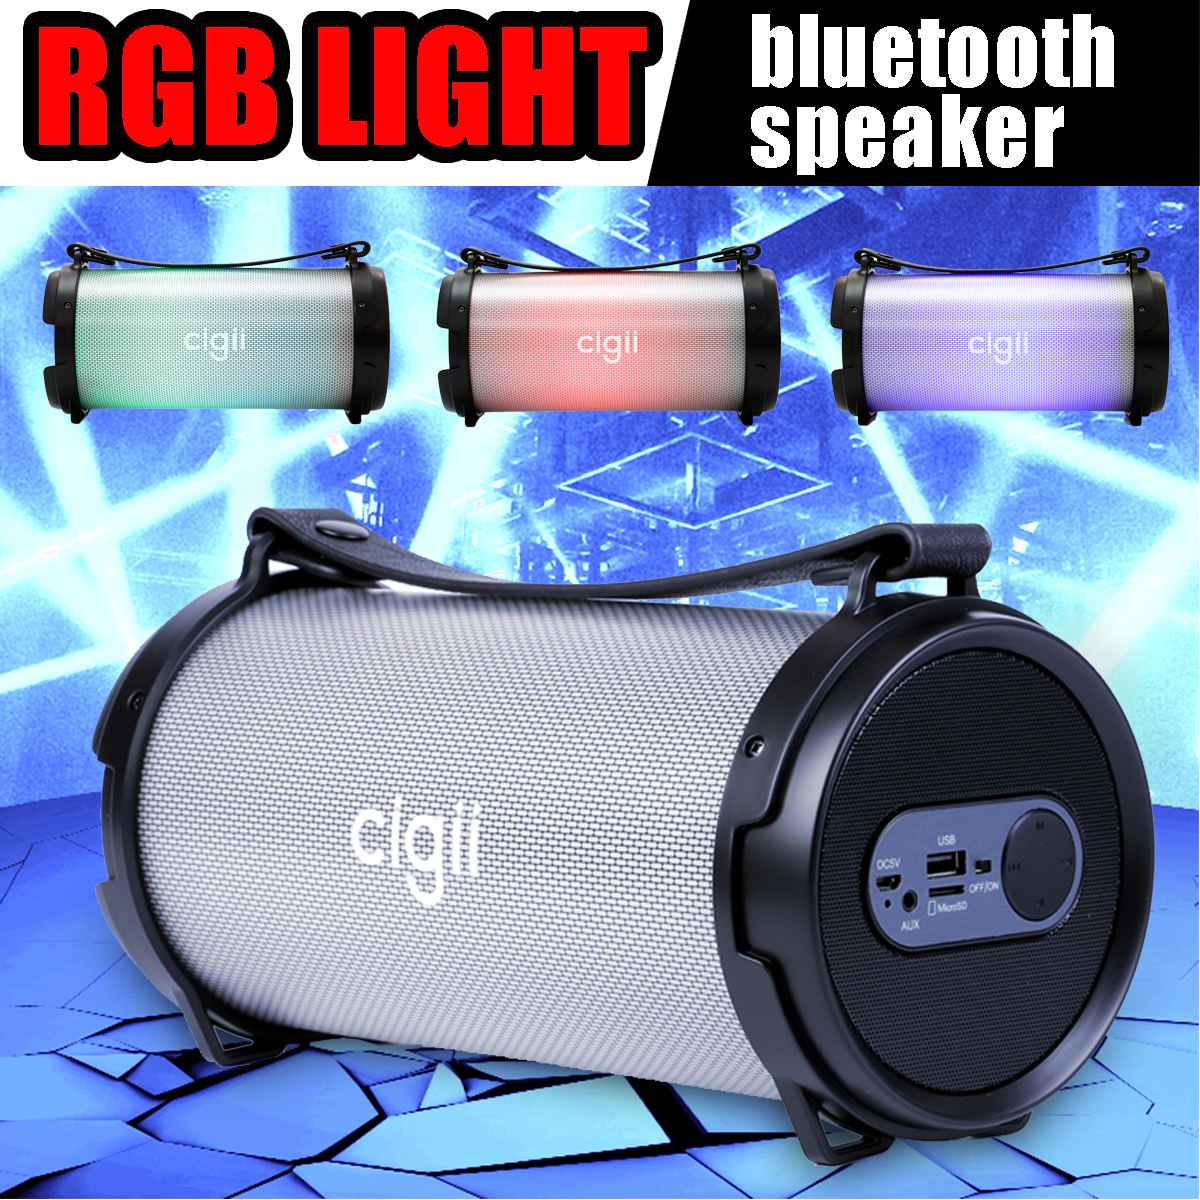 RGB Light bluetooth Speakers Bass Stereo Subwoofer AUX USB TF Card FM Radio for PC MID TV Speaker Box Outdoor Portable Speakers